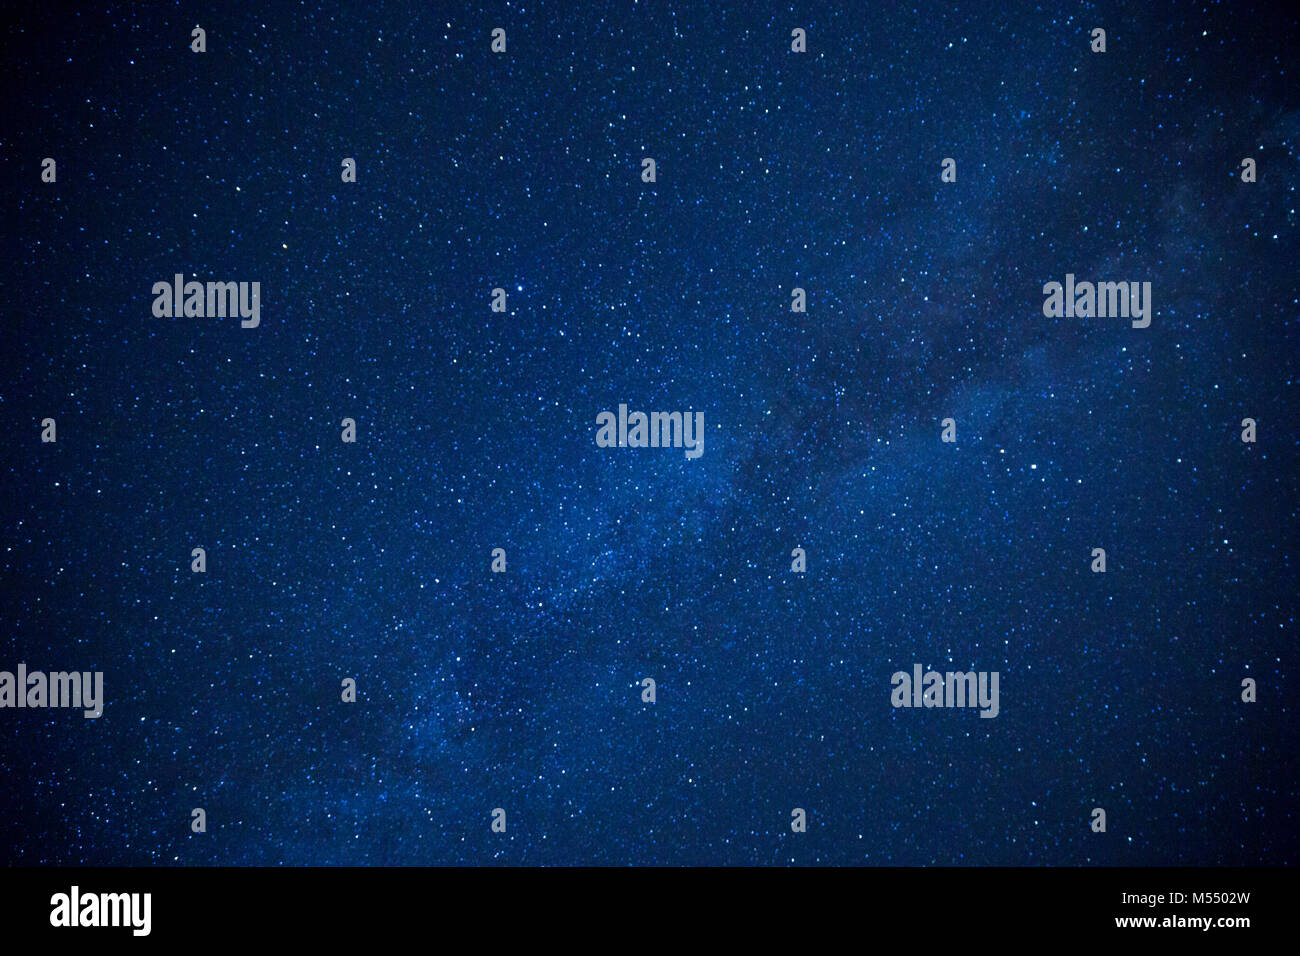 Milky Way Galaxy with Stars in the Universe. - Stock Image